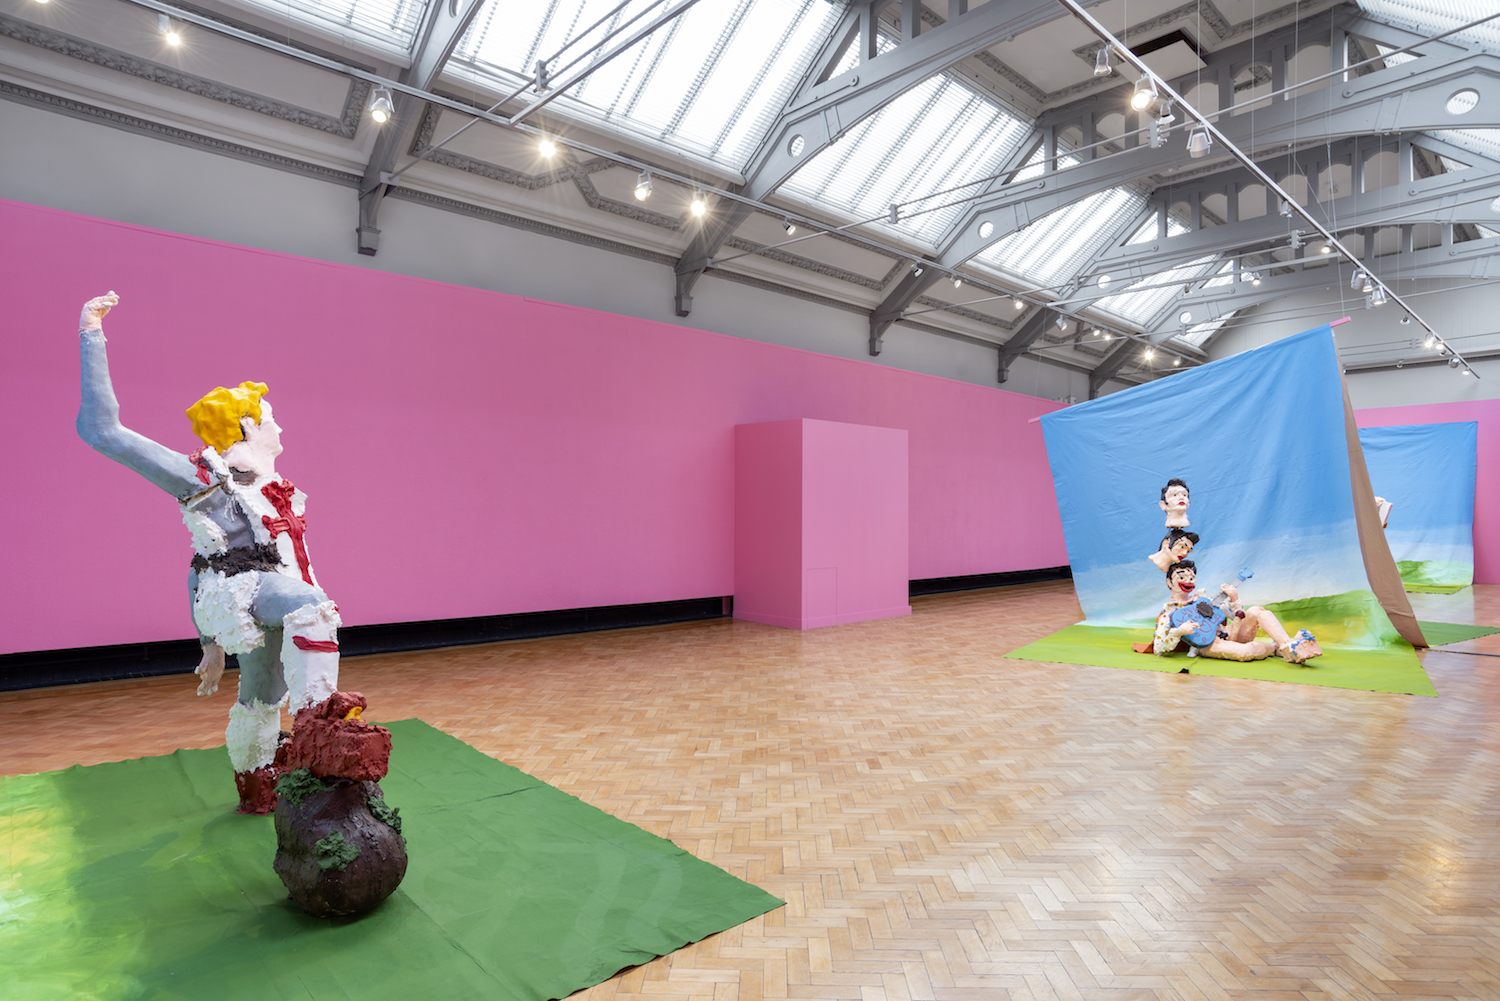 Jamie Fitzpatrick, He He He He, 2019. Installation view. Contemporary Forward at Touchstones Rochdale, UK. Photographer: Harry Meadley.